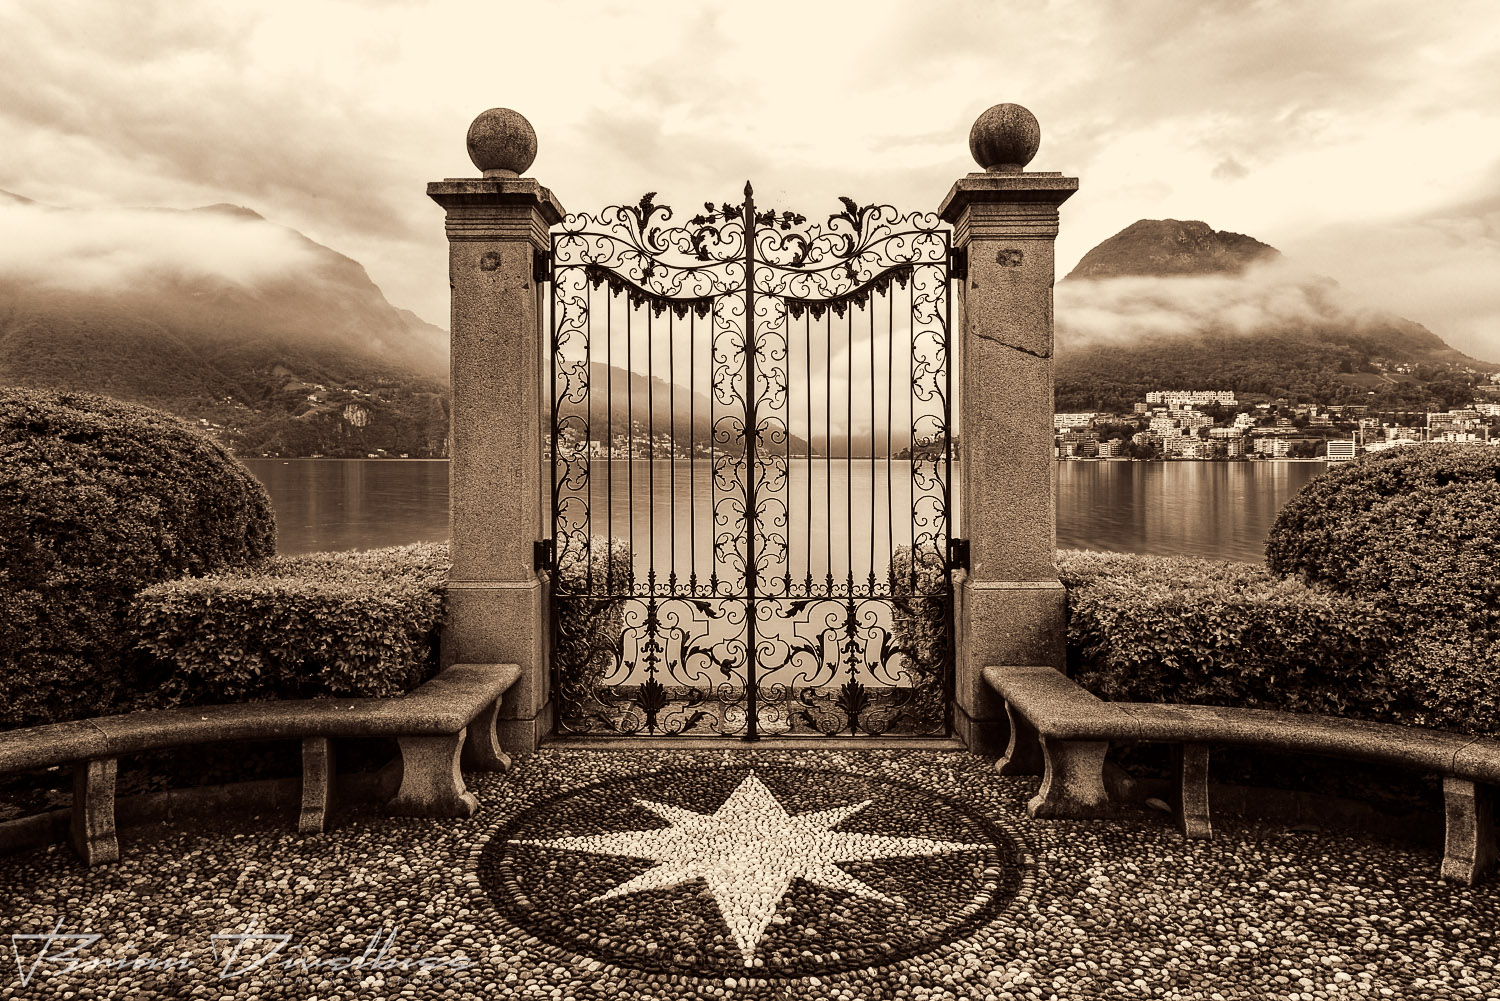 Water gate of Parco Ciani in Lugano, Switzerland in sepia.